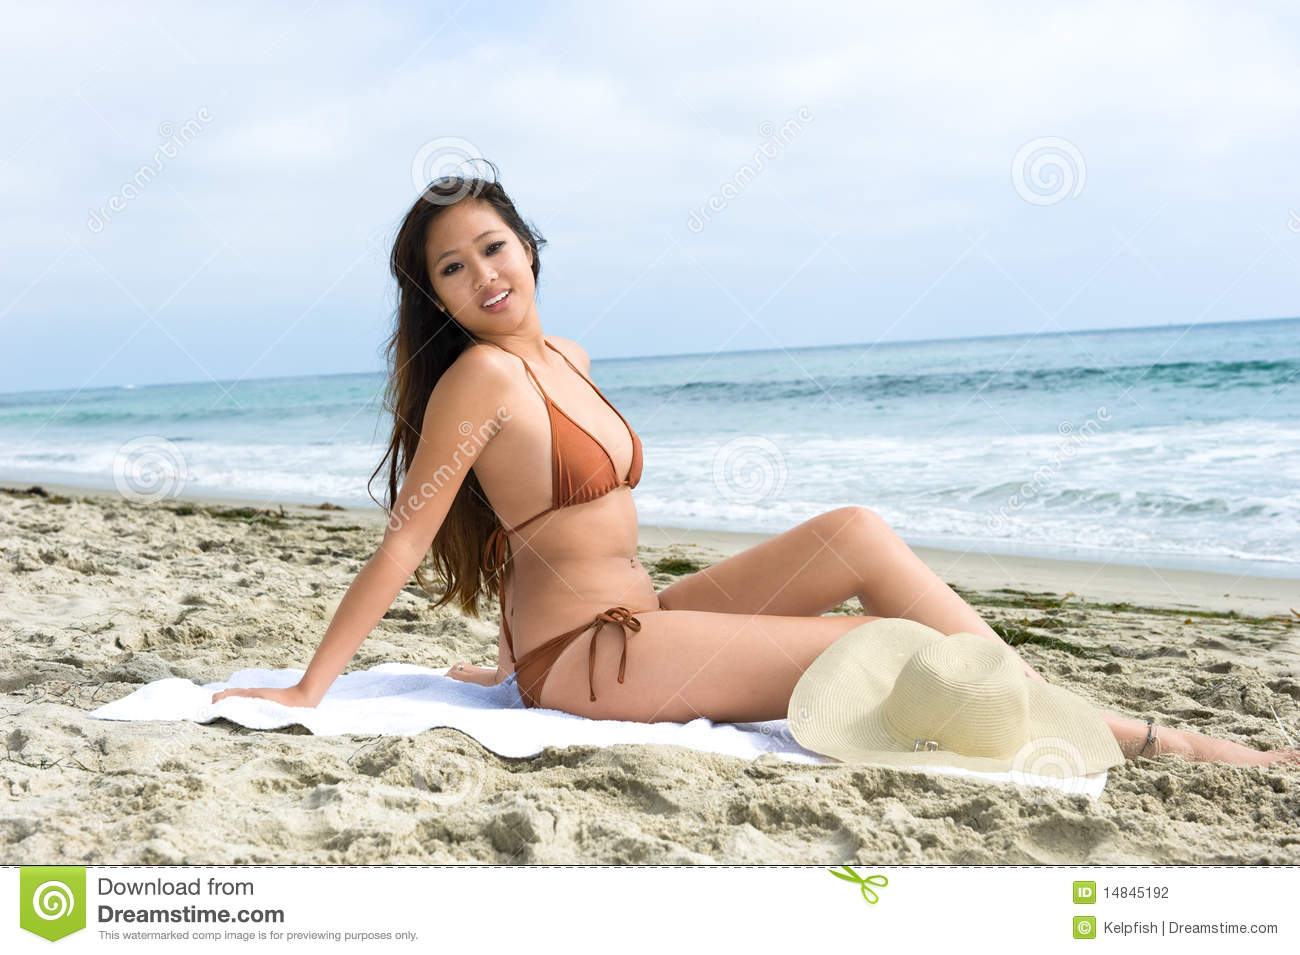 beach asian women dating site Meet single asian women & men in myrtle beach, south carolina online & connect in the chat rooms dhu is a 100% free dating site to find asian singles.